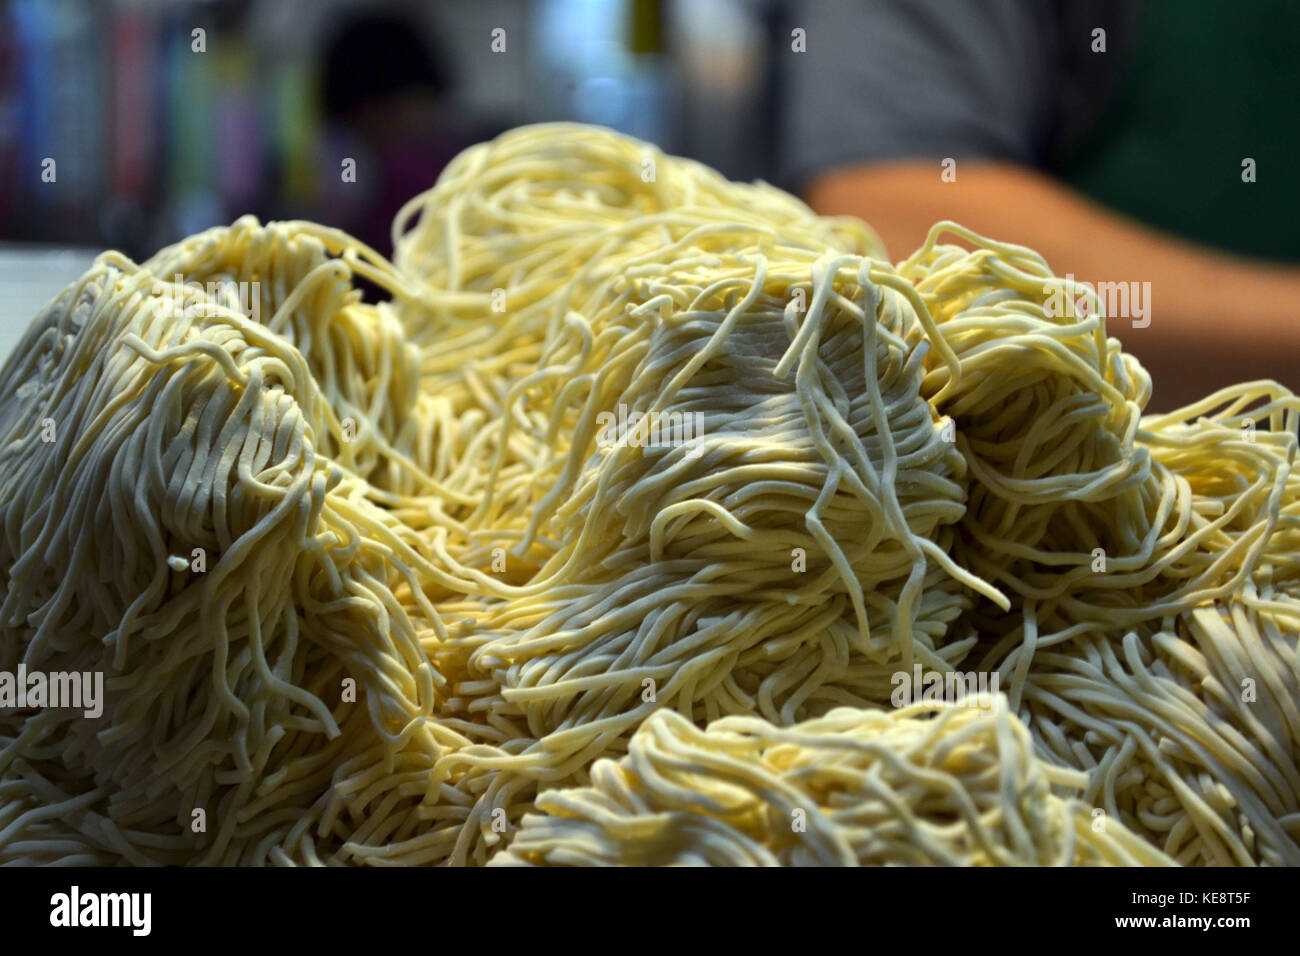 'The noodle', taken at Kaohsiung's Liuhe nightmarket in July 2017 - Stock Image